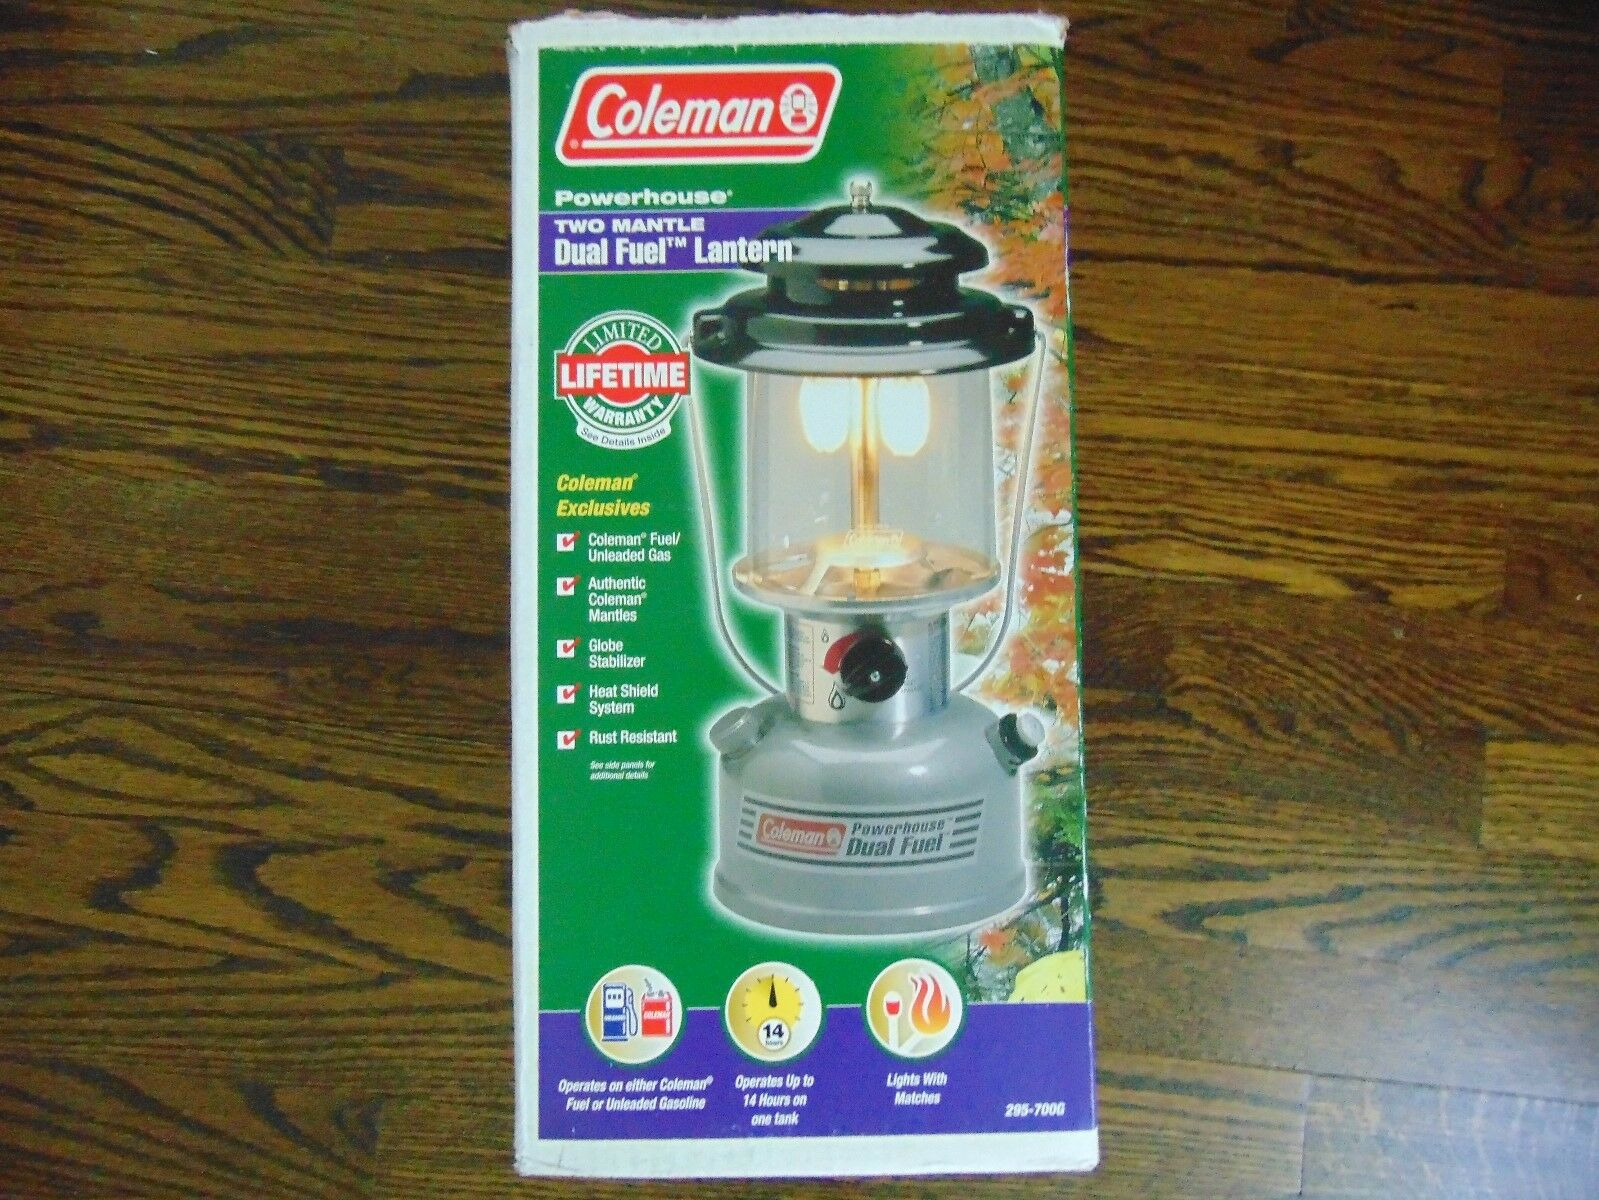 COLEMAN TWO MANTLE DUAL FUEL LANTERN 700G NEW   famous brand